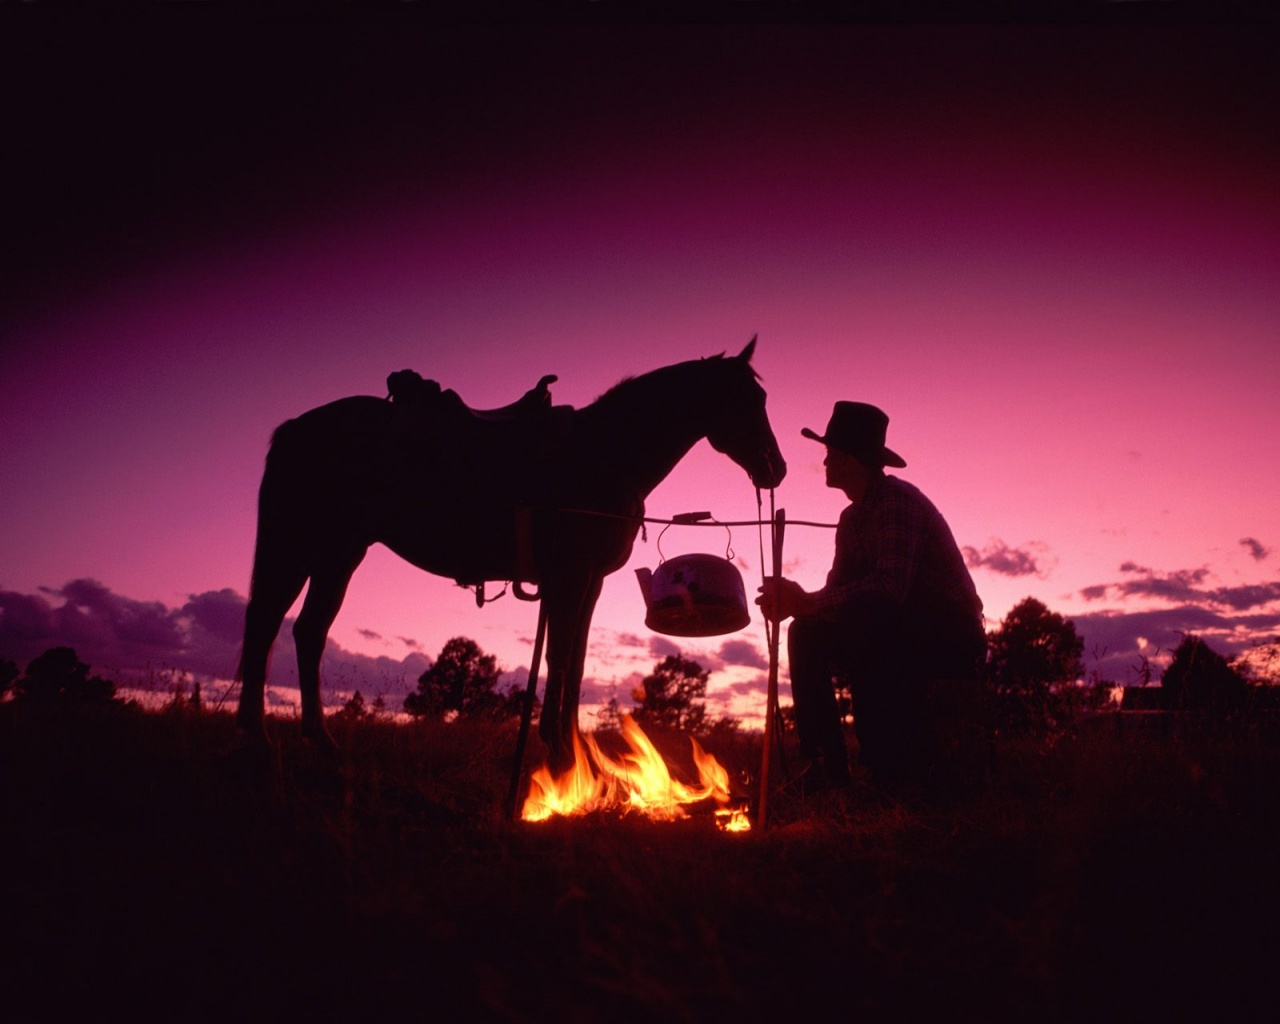 1280x1024 Cowboy and fire desktop wallpapers and stock photos